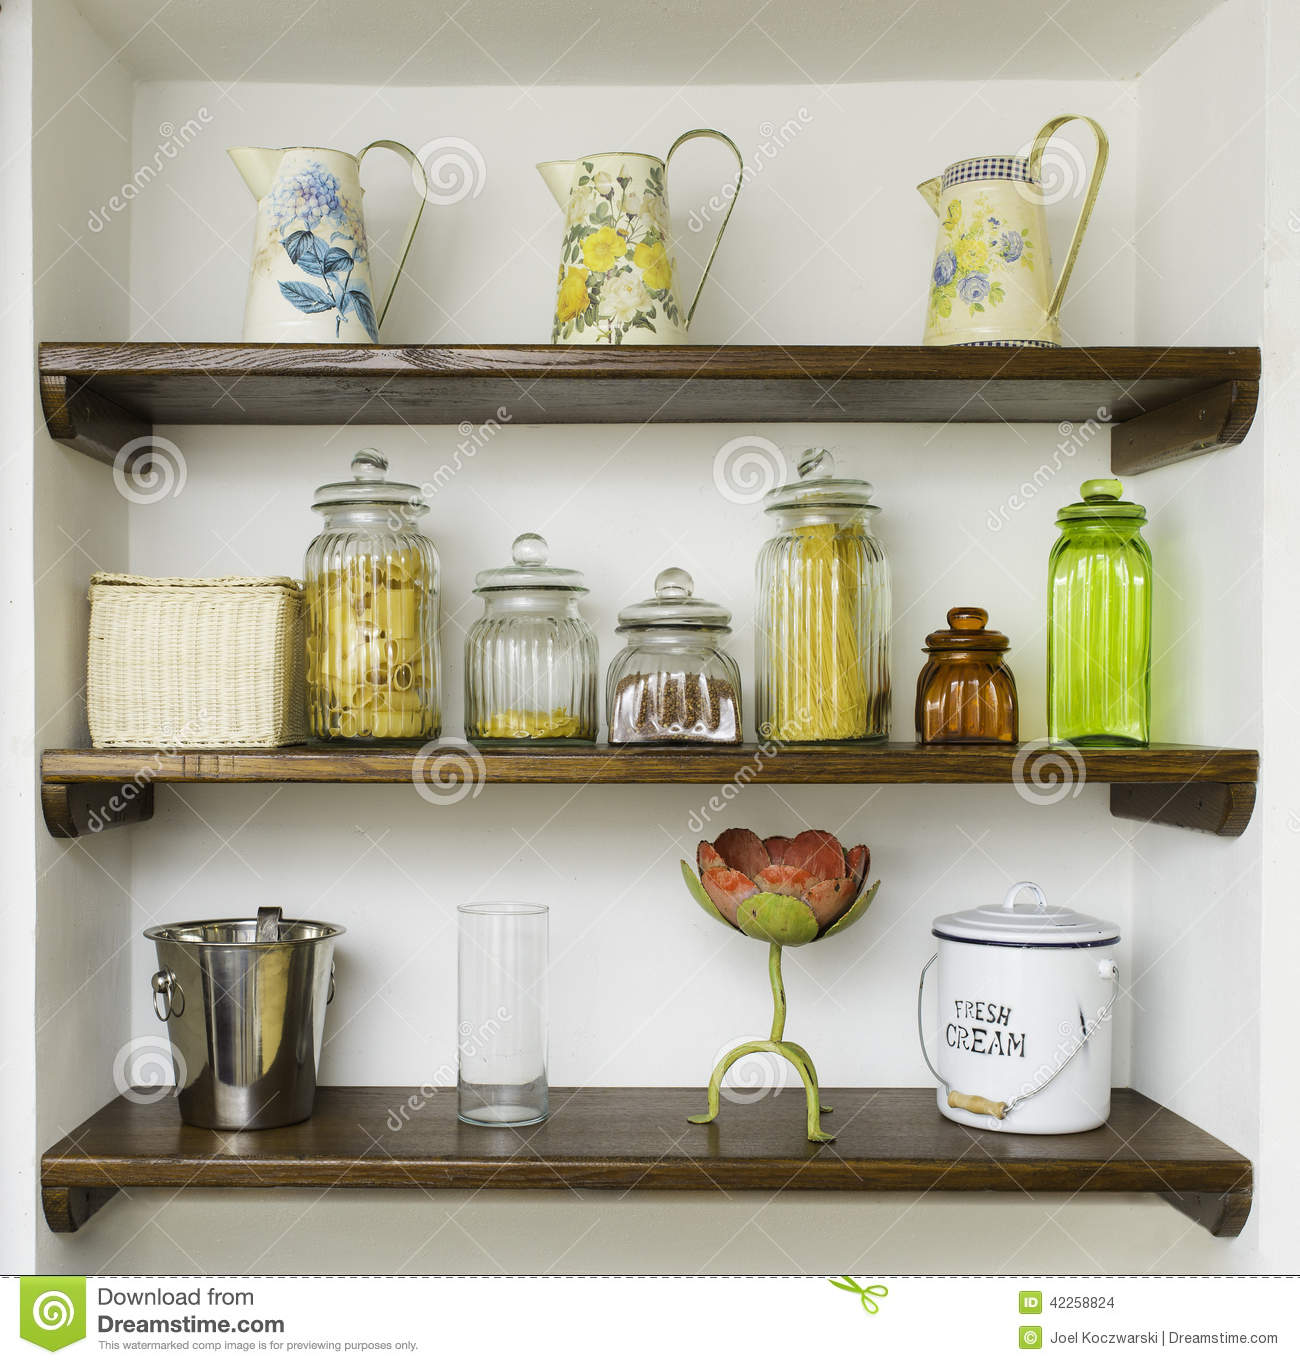 Vintage Kitchen Shelves With Jars Jugs And Pots Stock